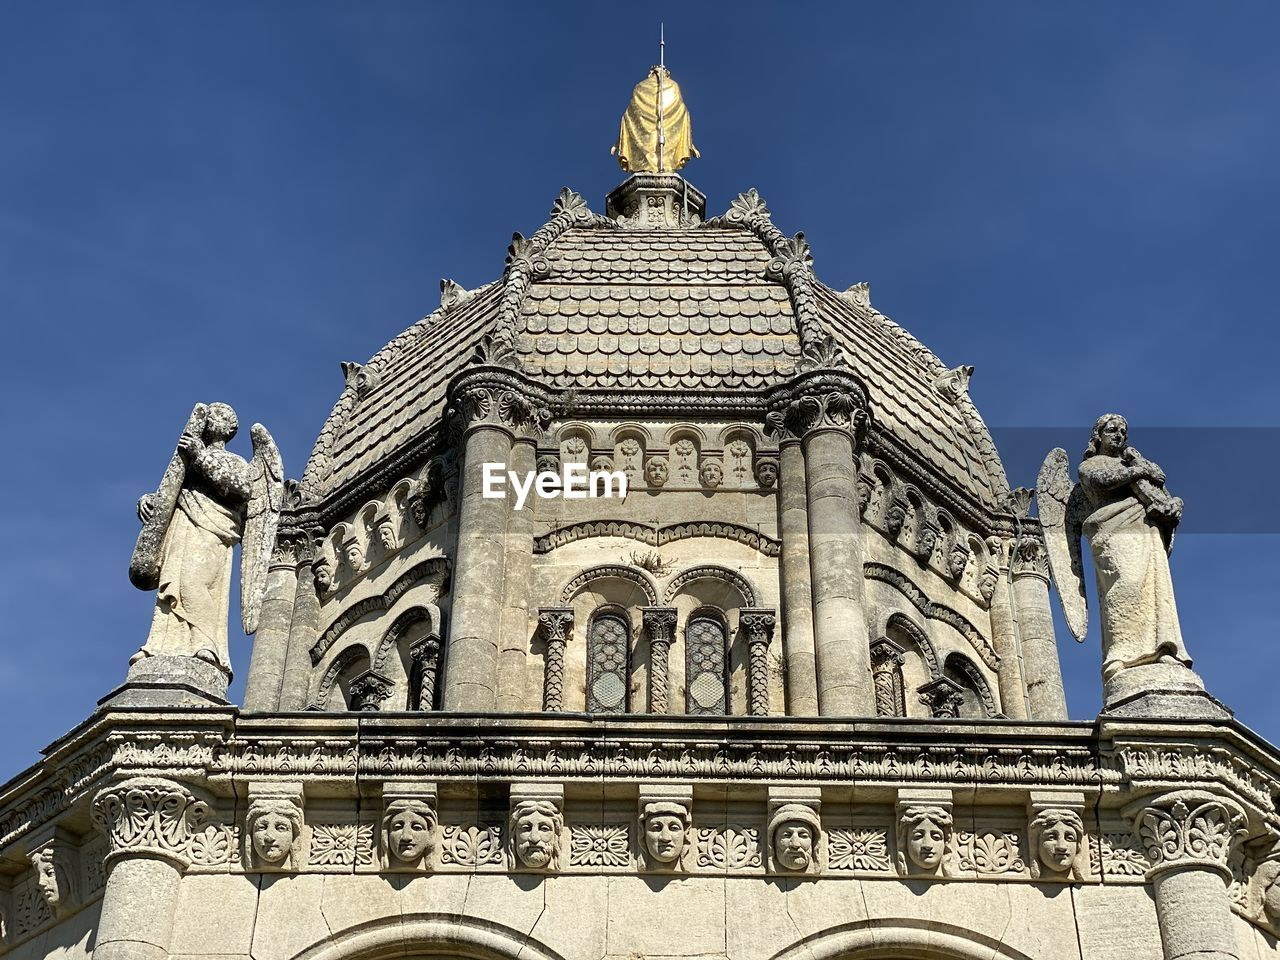 architecture, built structure, building exterior, low angle view, sky, sculpture, representation, art and craft, travel destinations, human representation, statue, nature, no people, city, building, history, male likeness, the past, tourism, travel, outdoors, architectural column, ornate